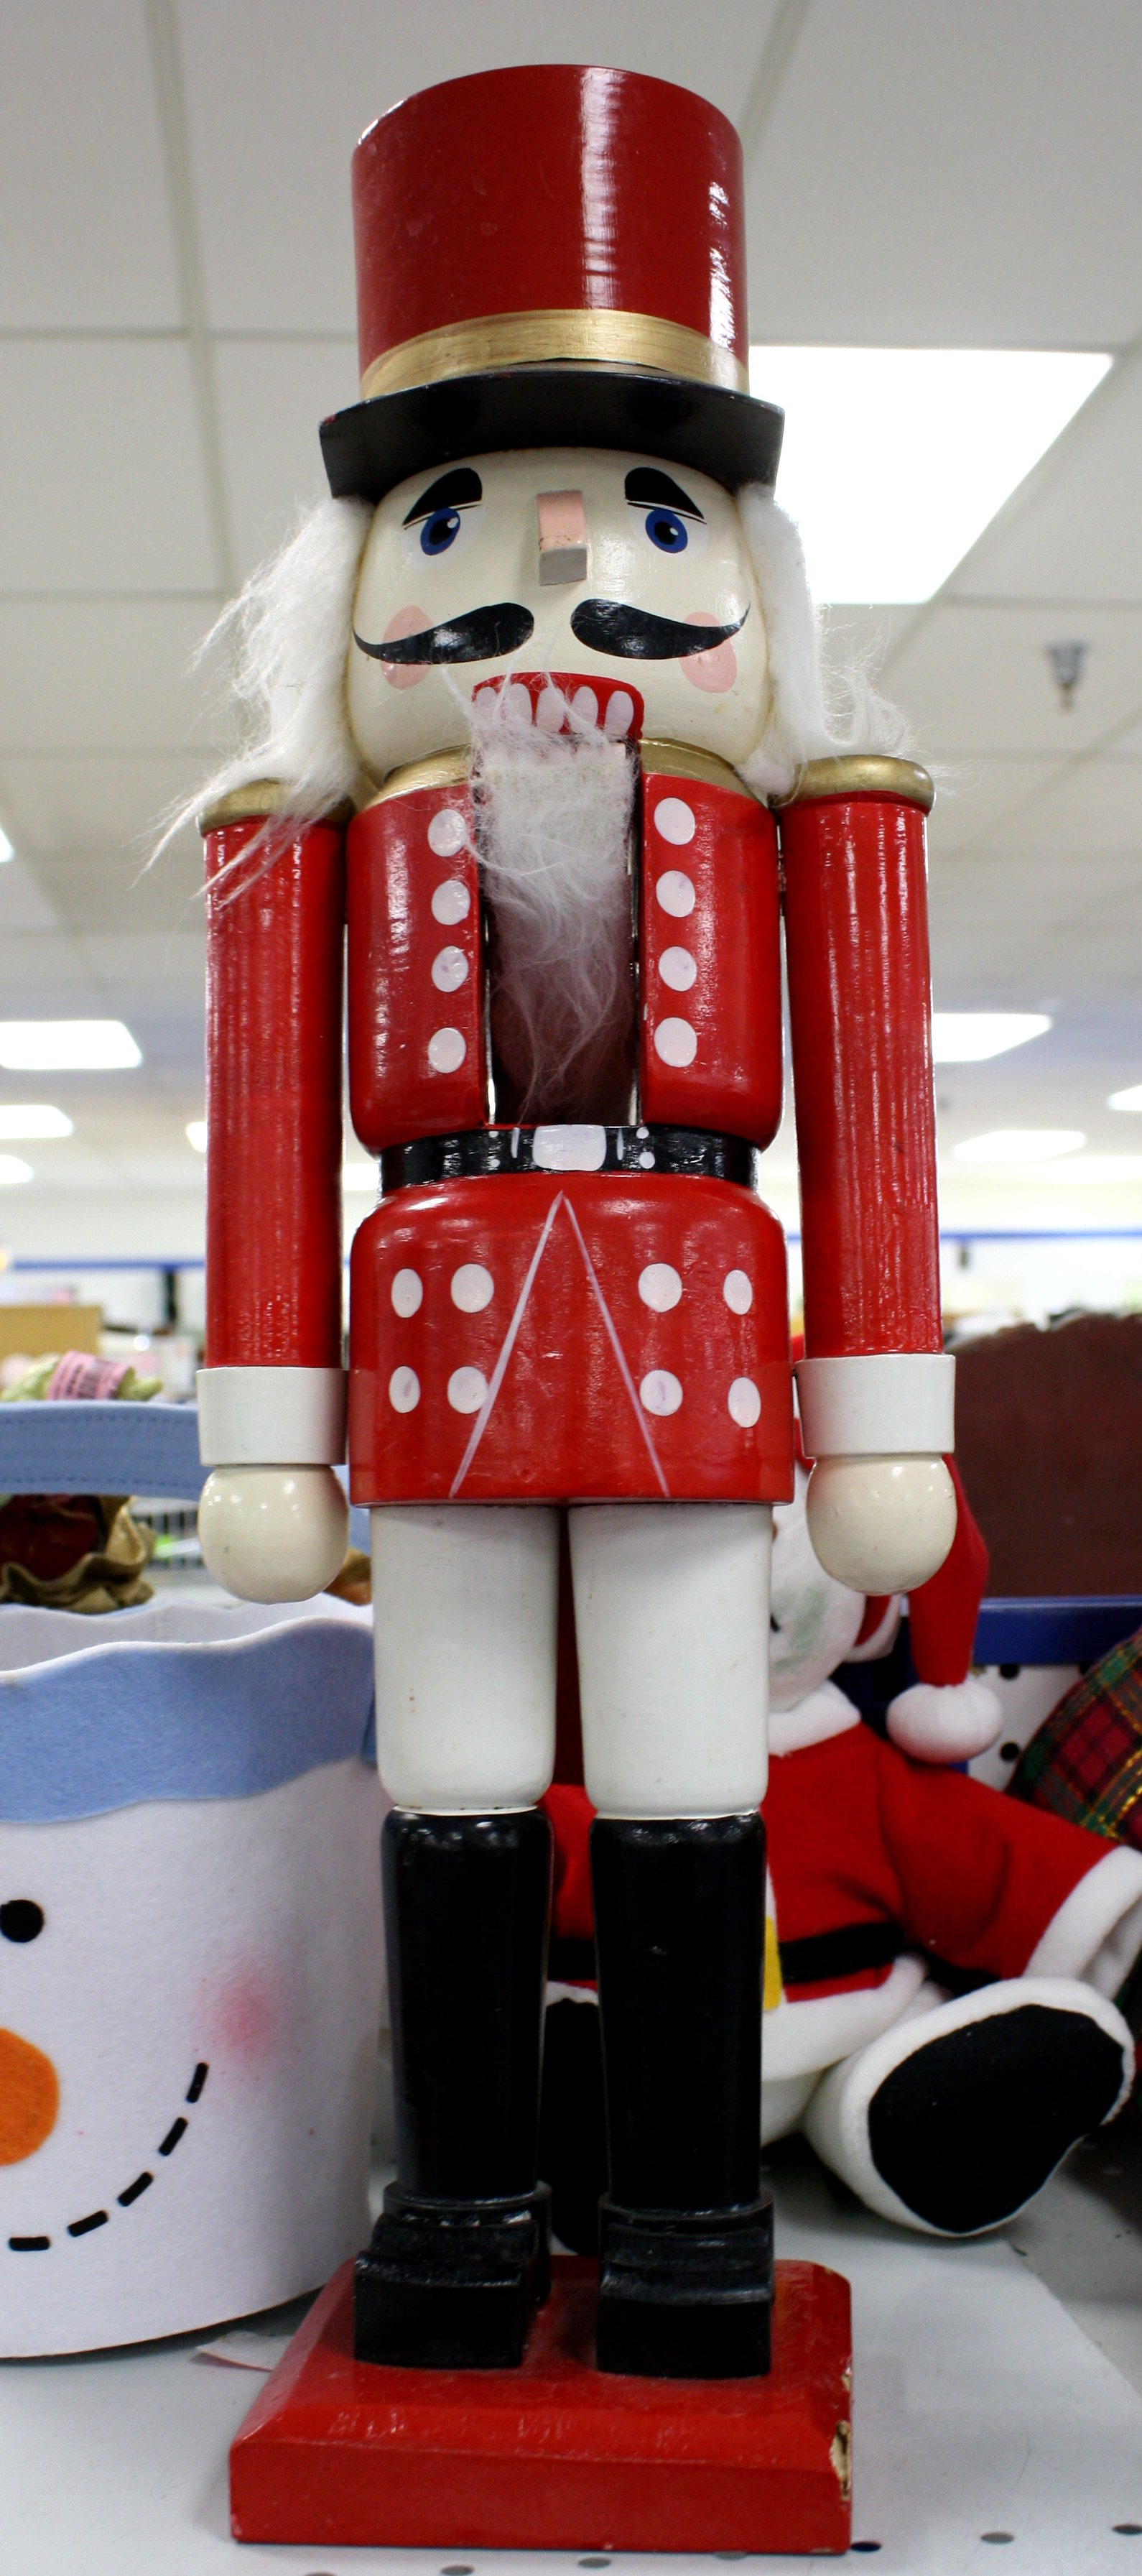 click here to download full resolution image - Large Toy Soldier Christmas Decoration